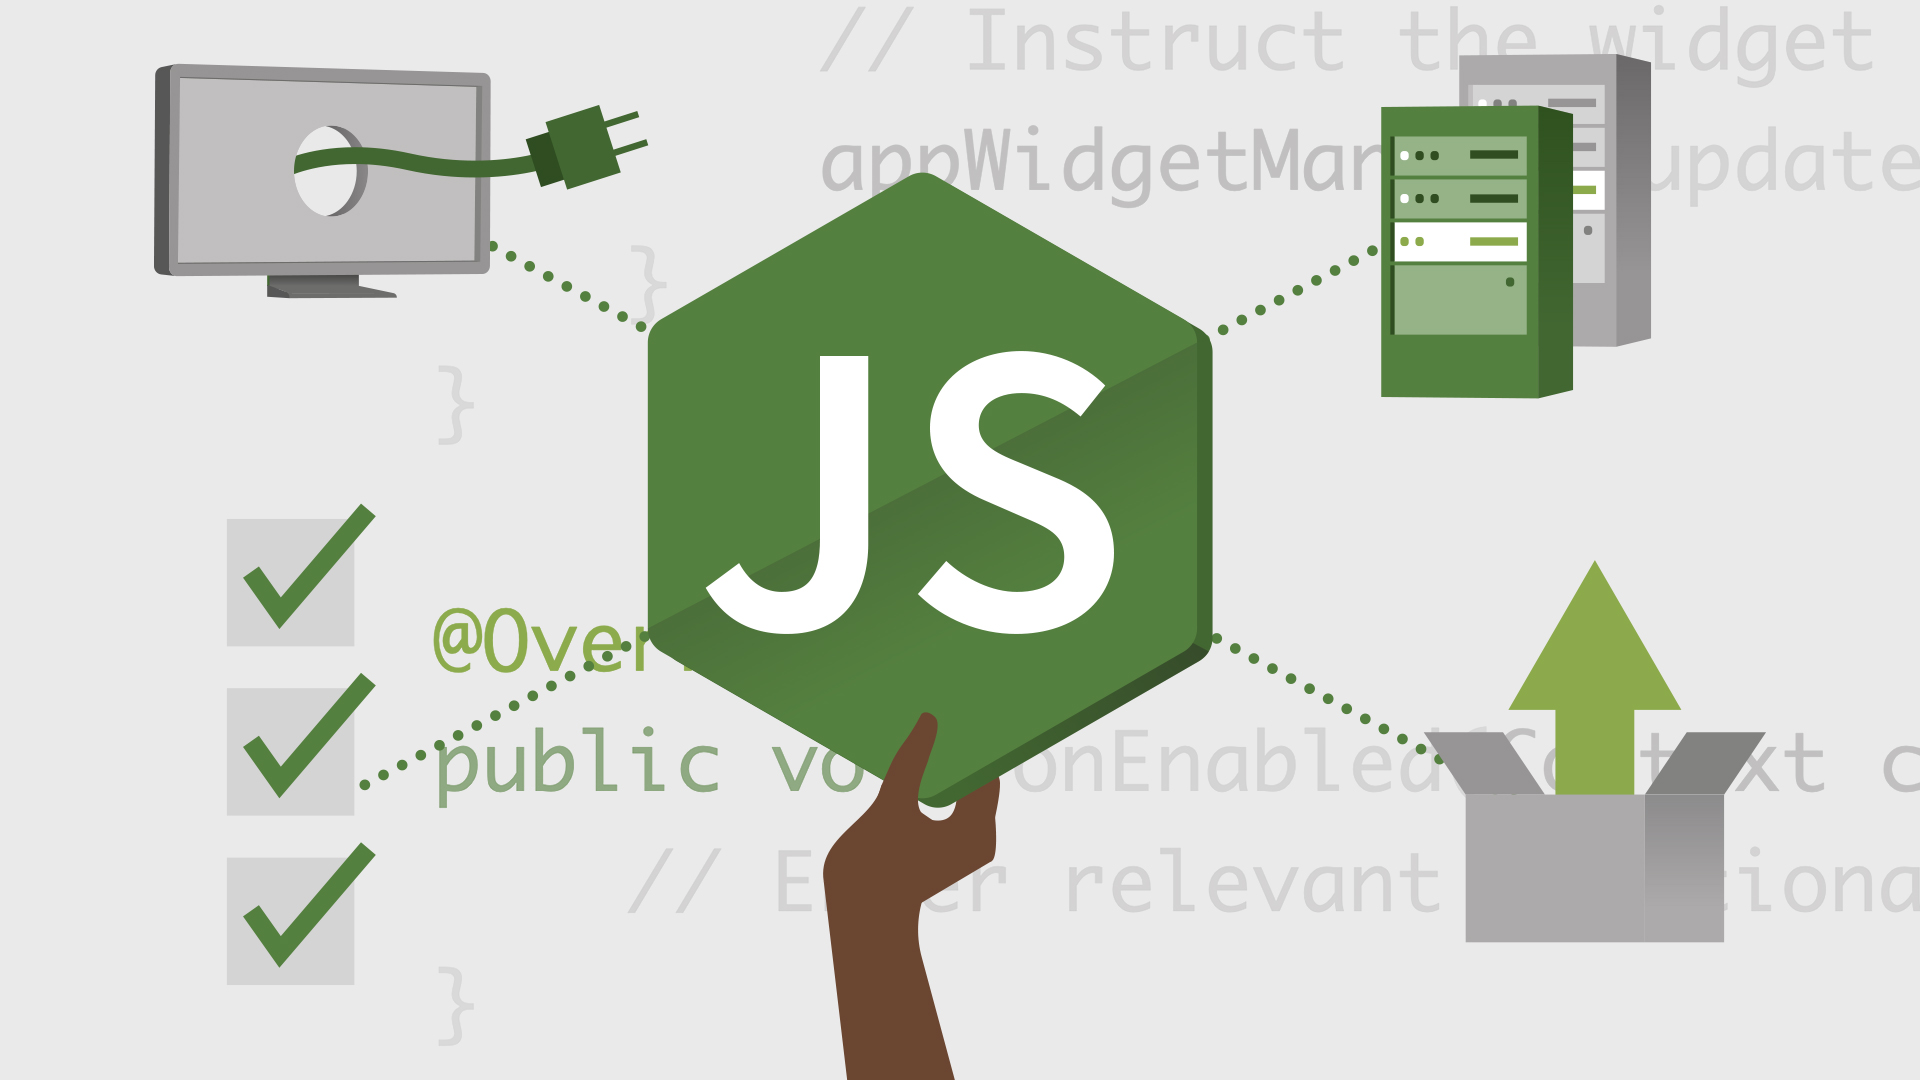 Node js Essential Training: Web Servers, Tests, and Deployment